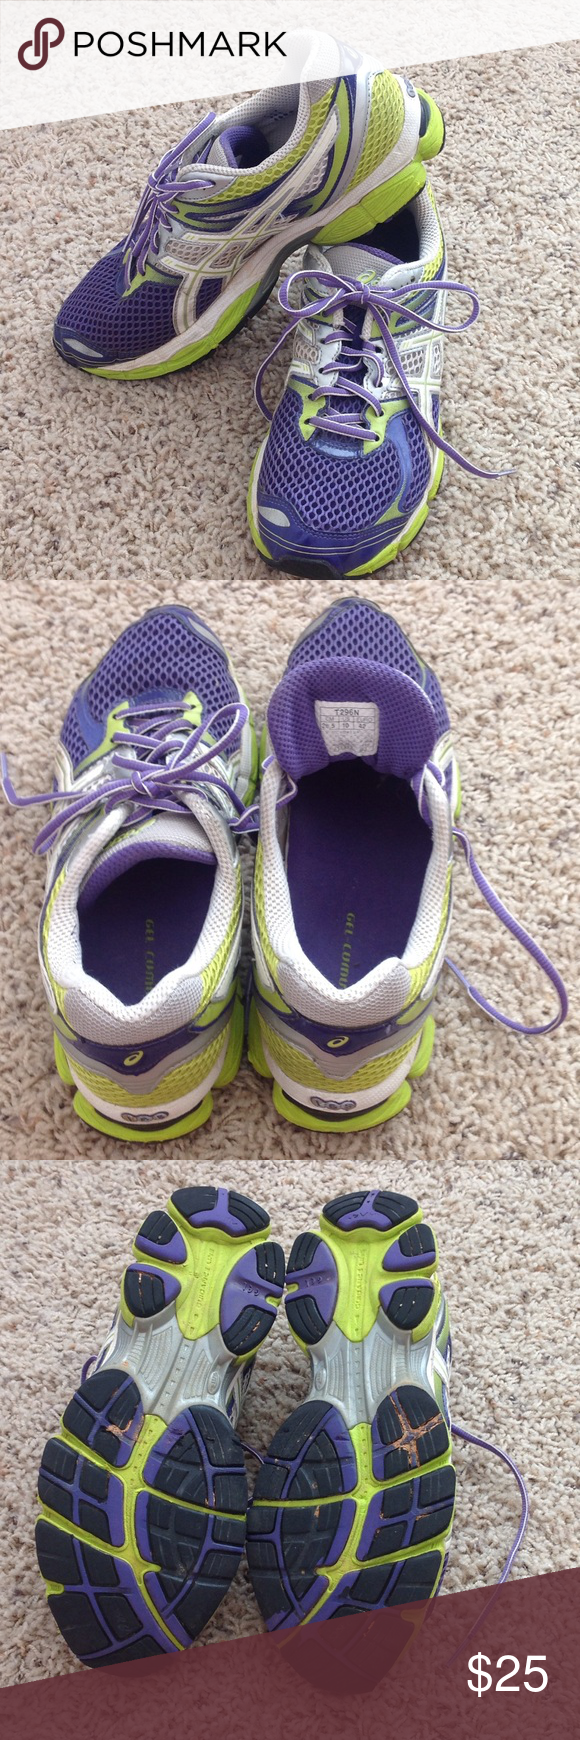 Ladies athletic shoes Asics gel cumulus running shoes. Lovingly worn. purple with green and white accents Asics Shoes Athletic Shoes